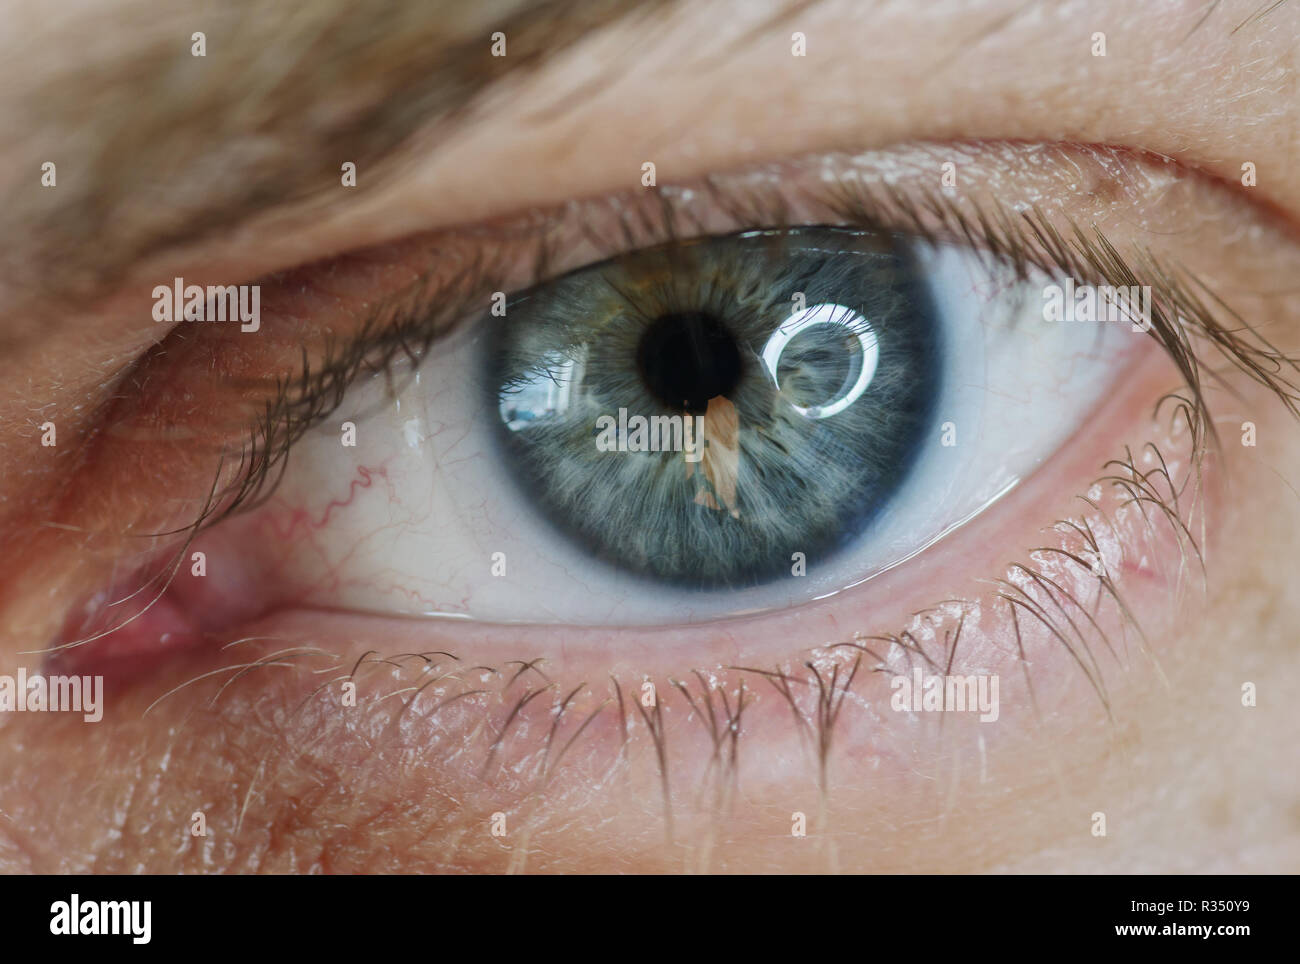 0b05362c Blue man eye with contact lens, macro shot. Shallow depth of field. -